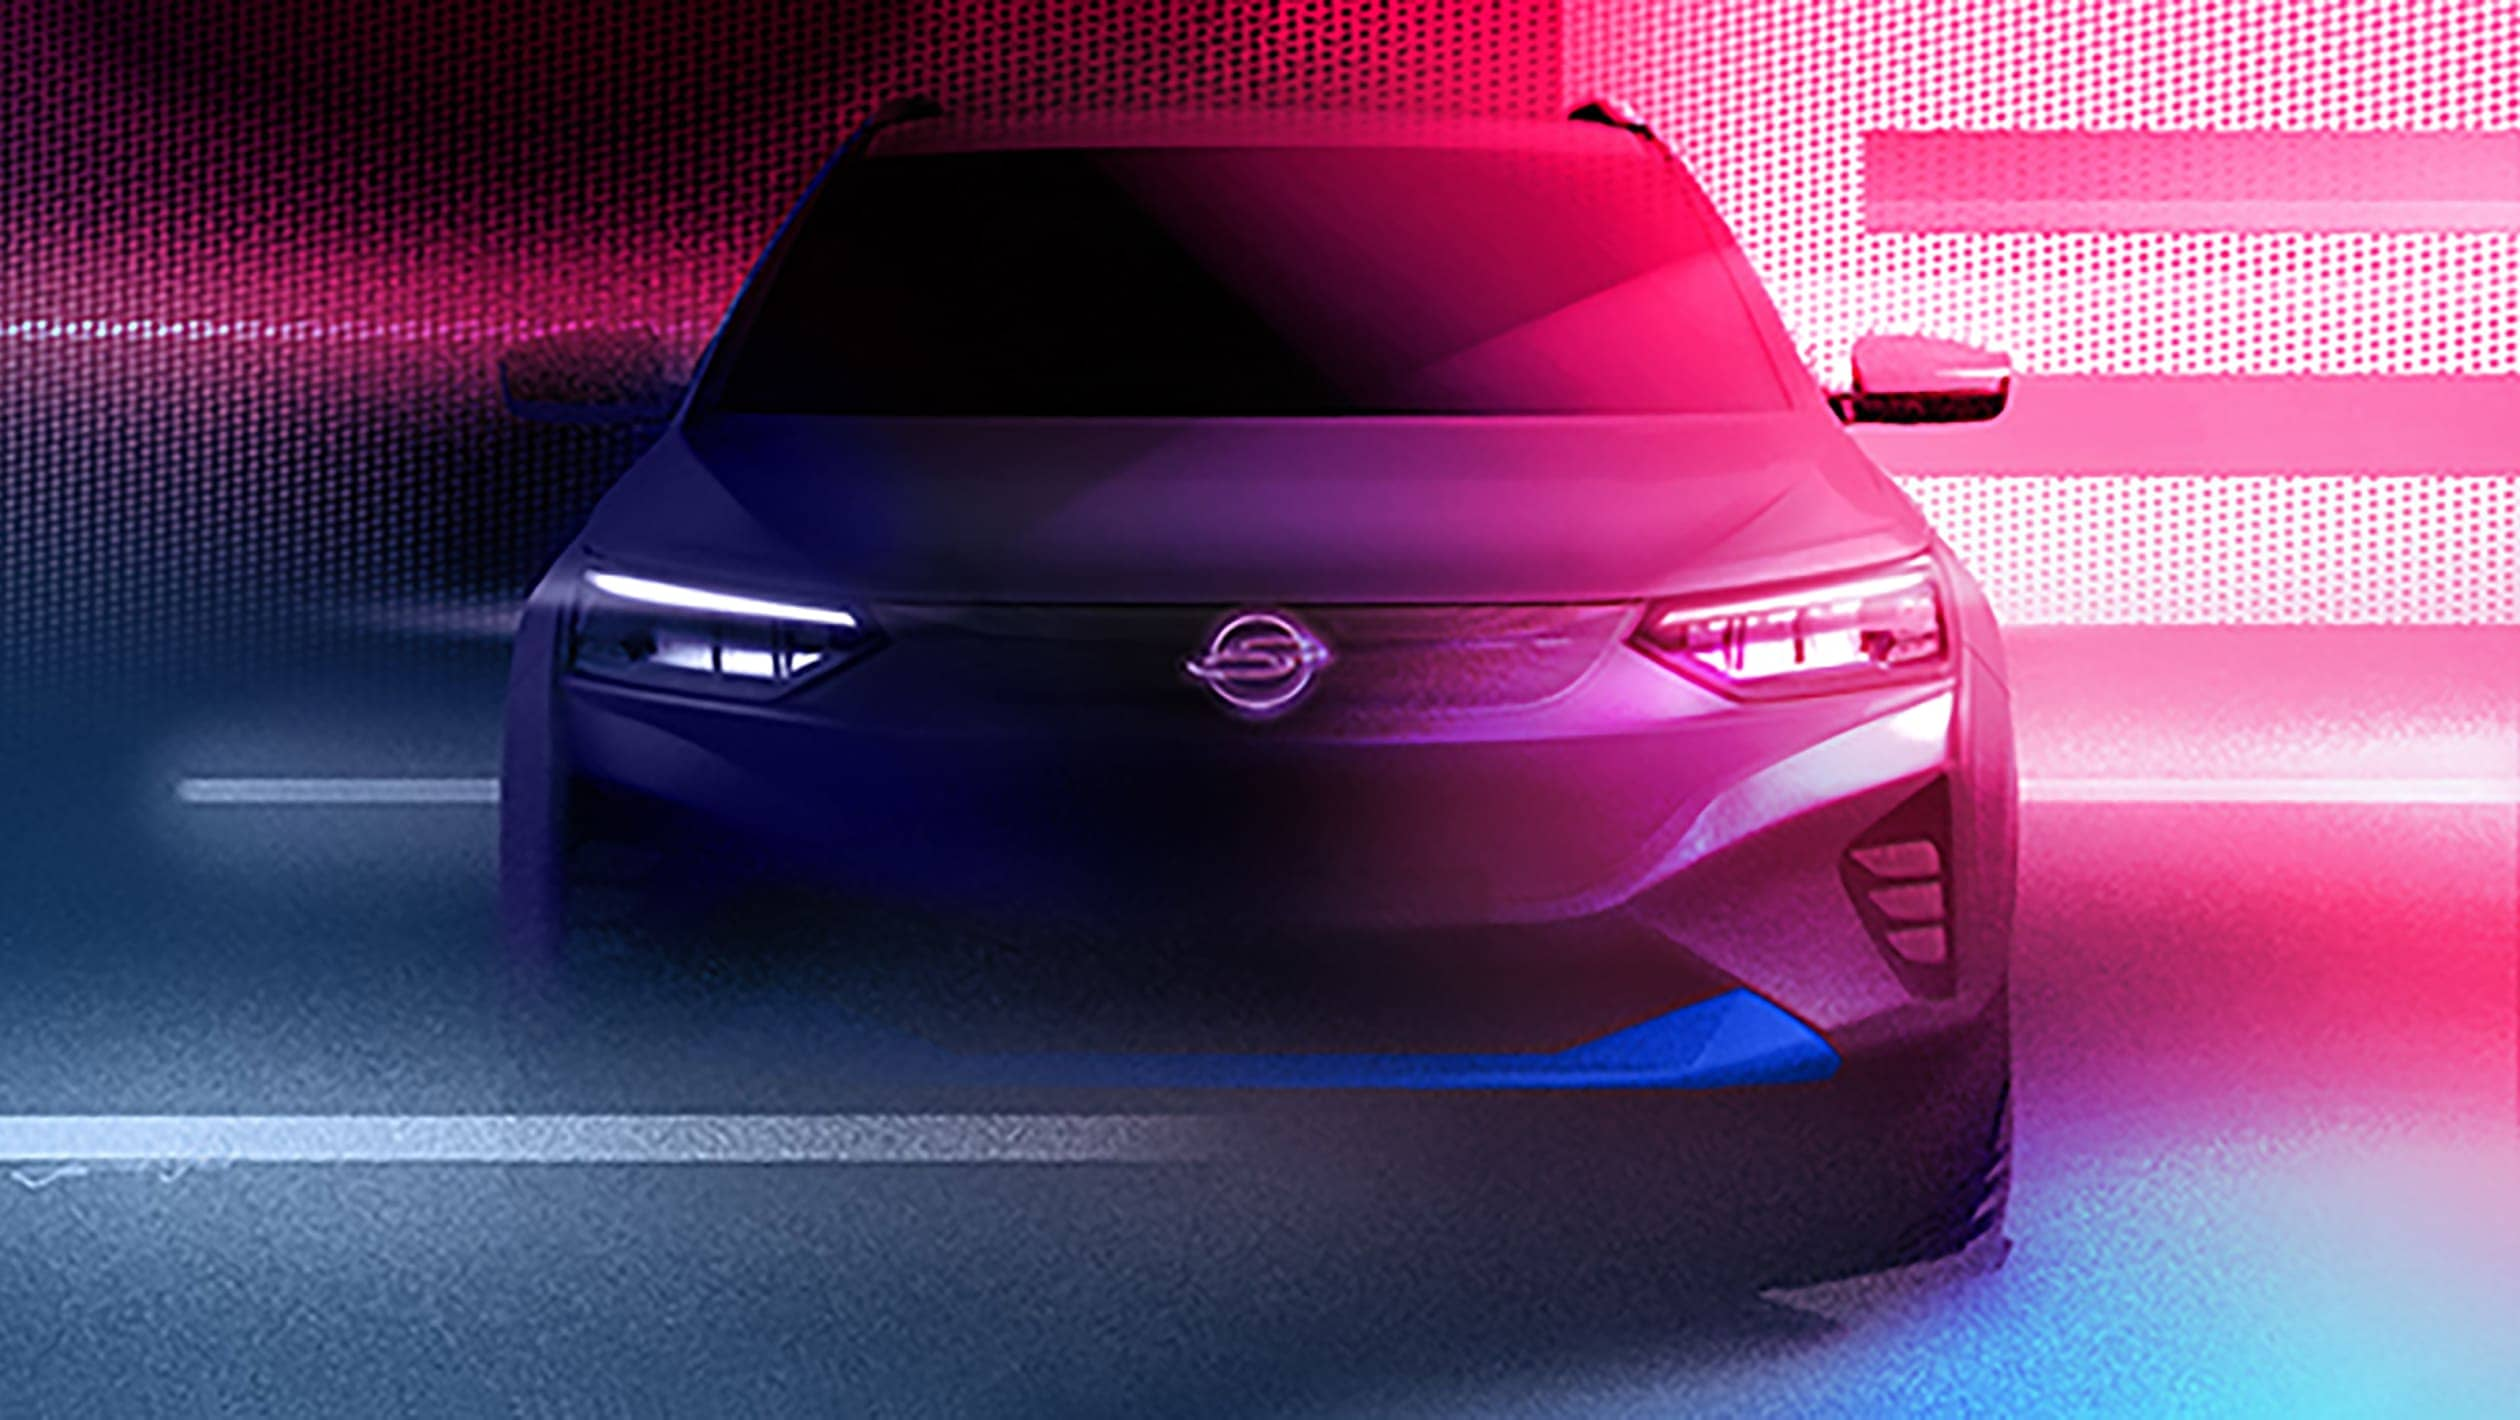 SsangYong E100 electric SUV, foil for Mahindra eXUV300, teased